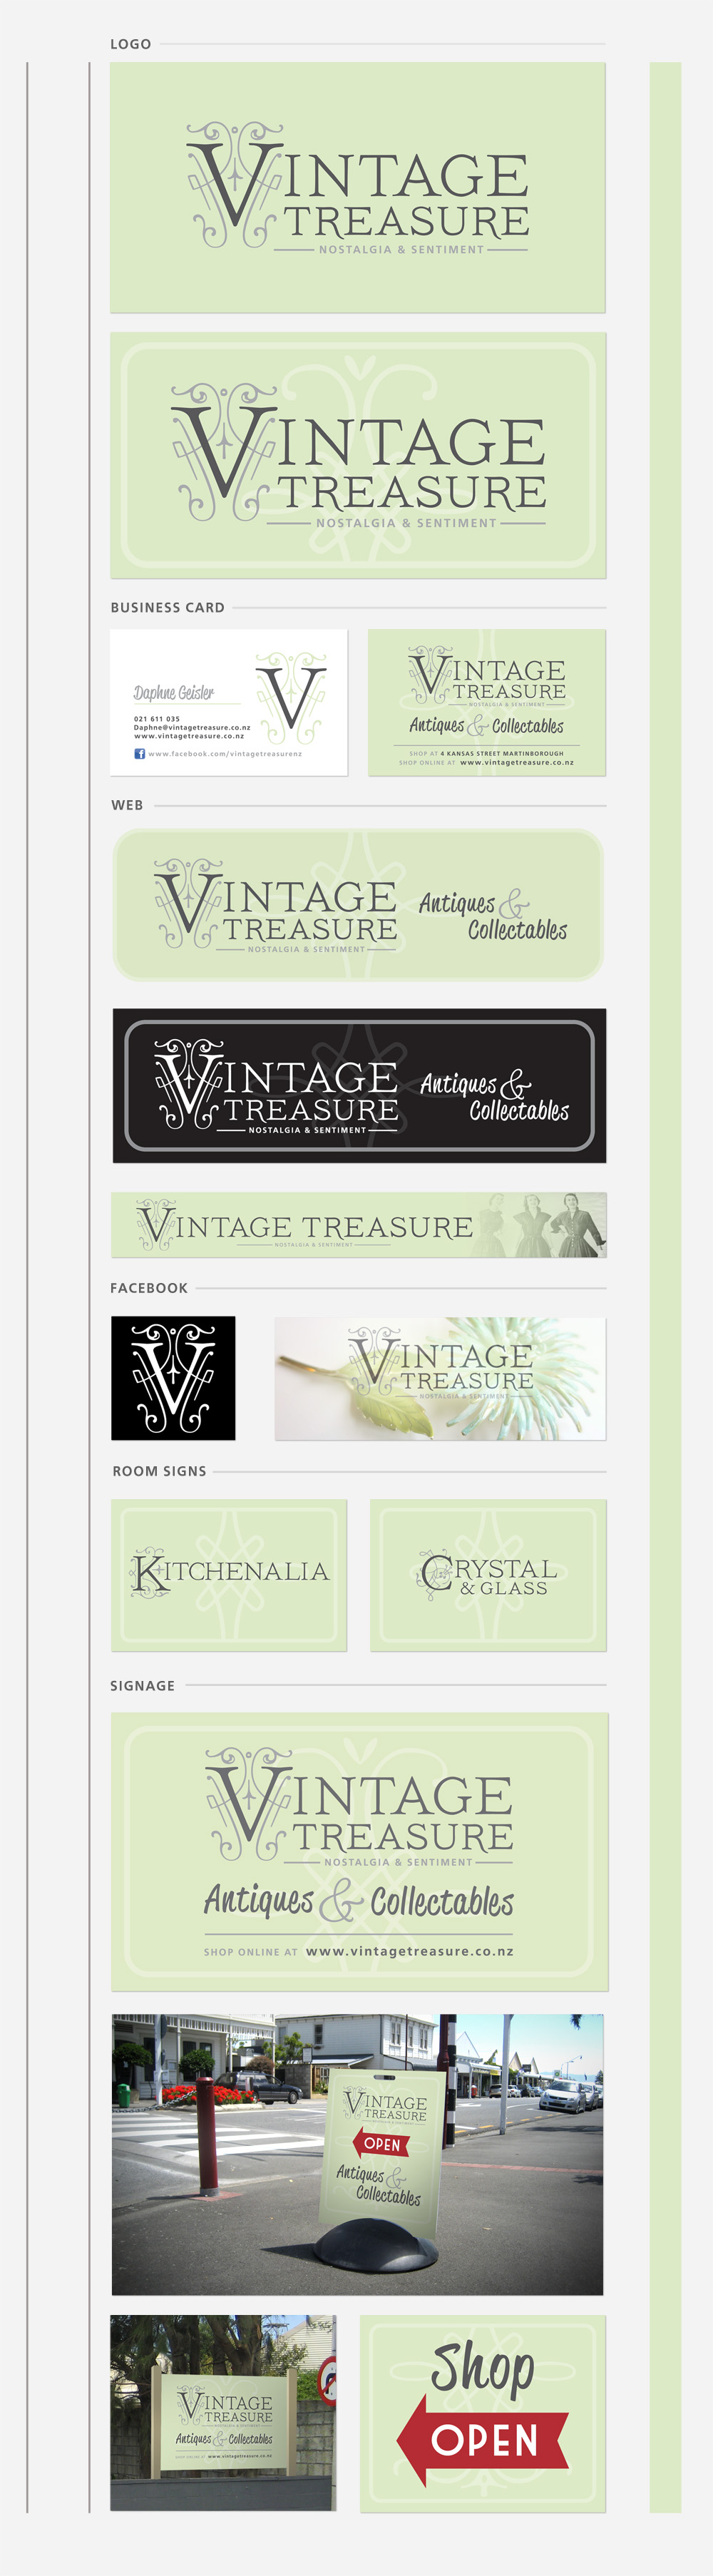 Vintage Treasure rebrand